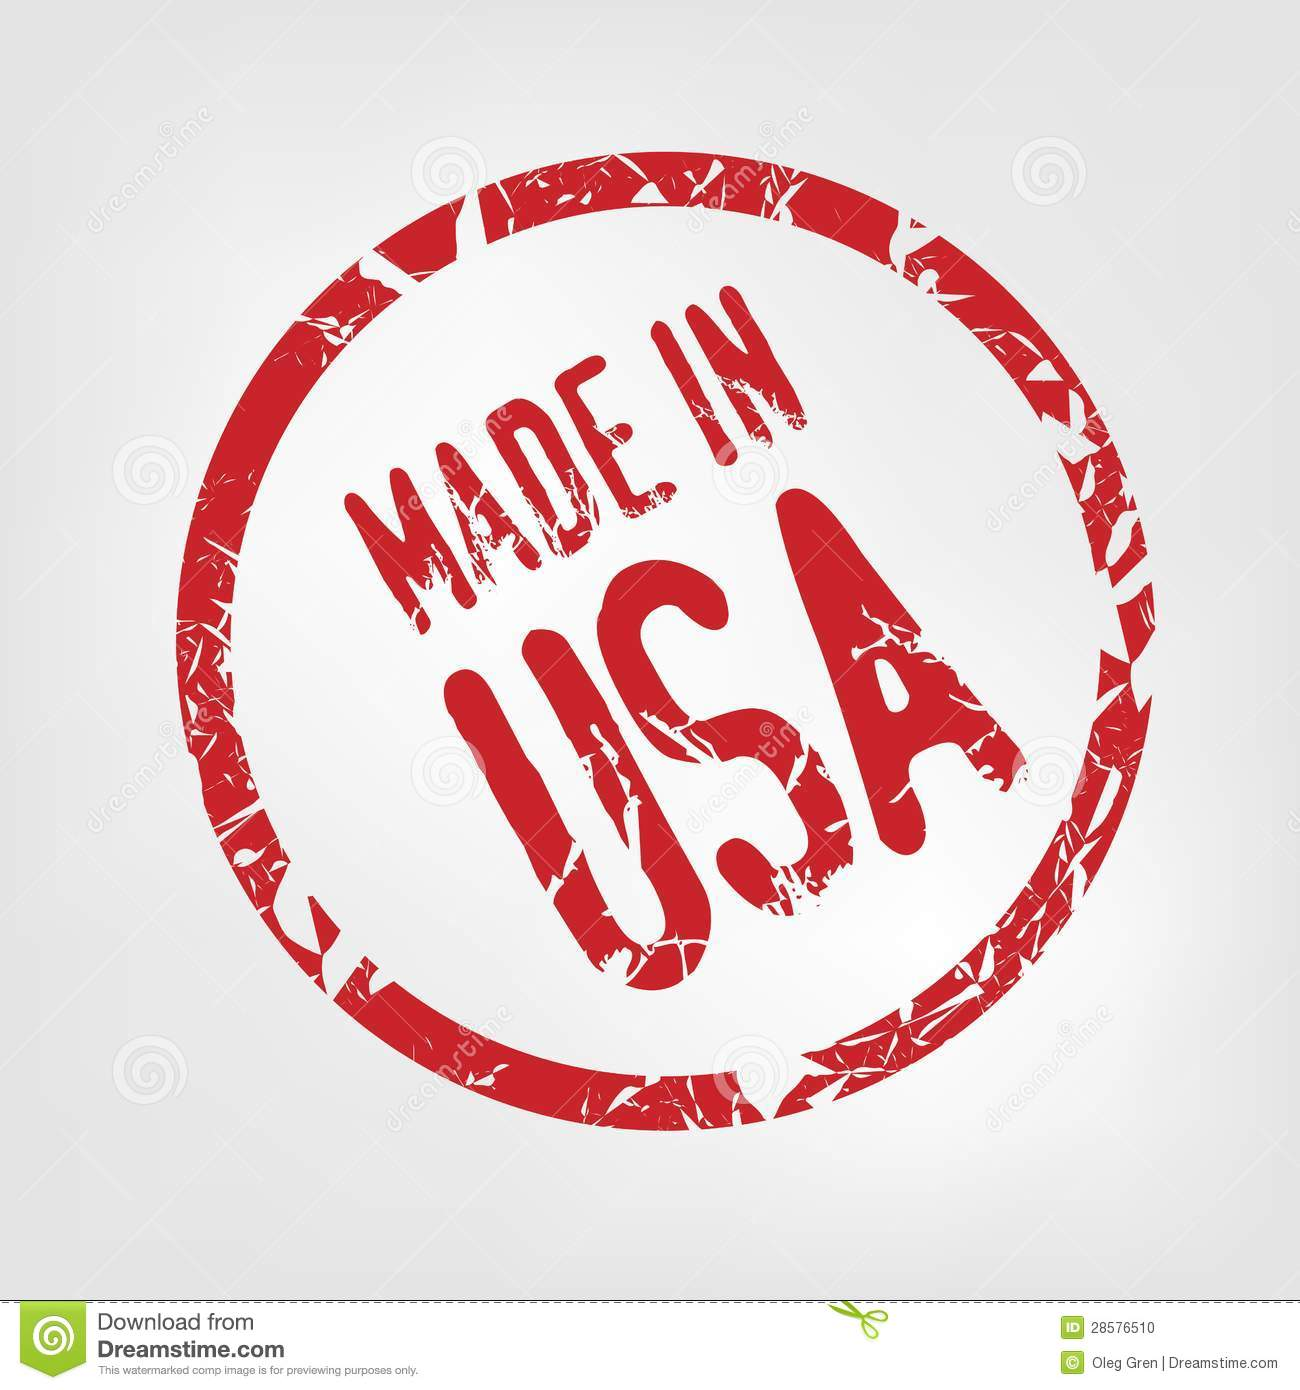 Stock Photo Made Usa Stamp Image28576510 on Shapes Rubber Stamp